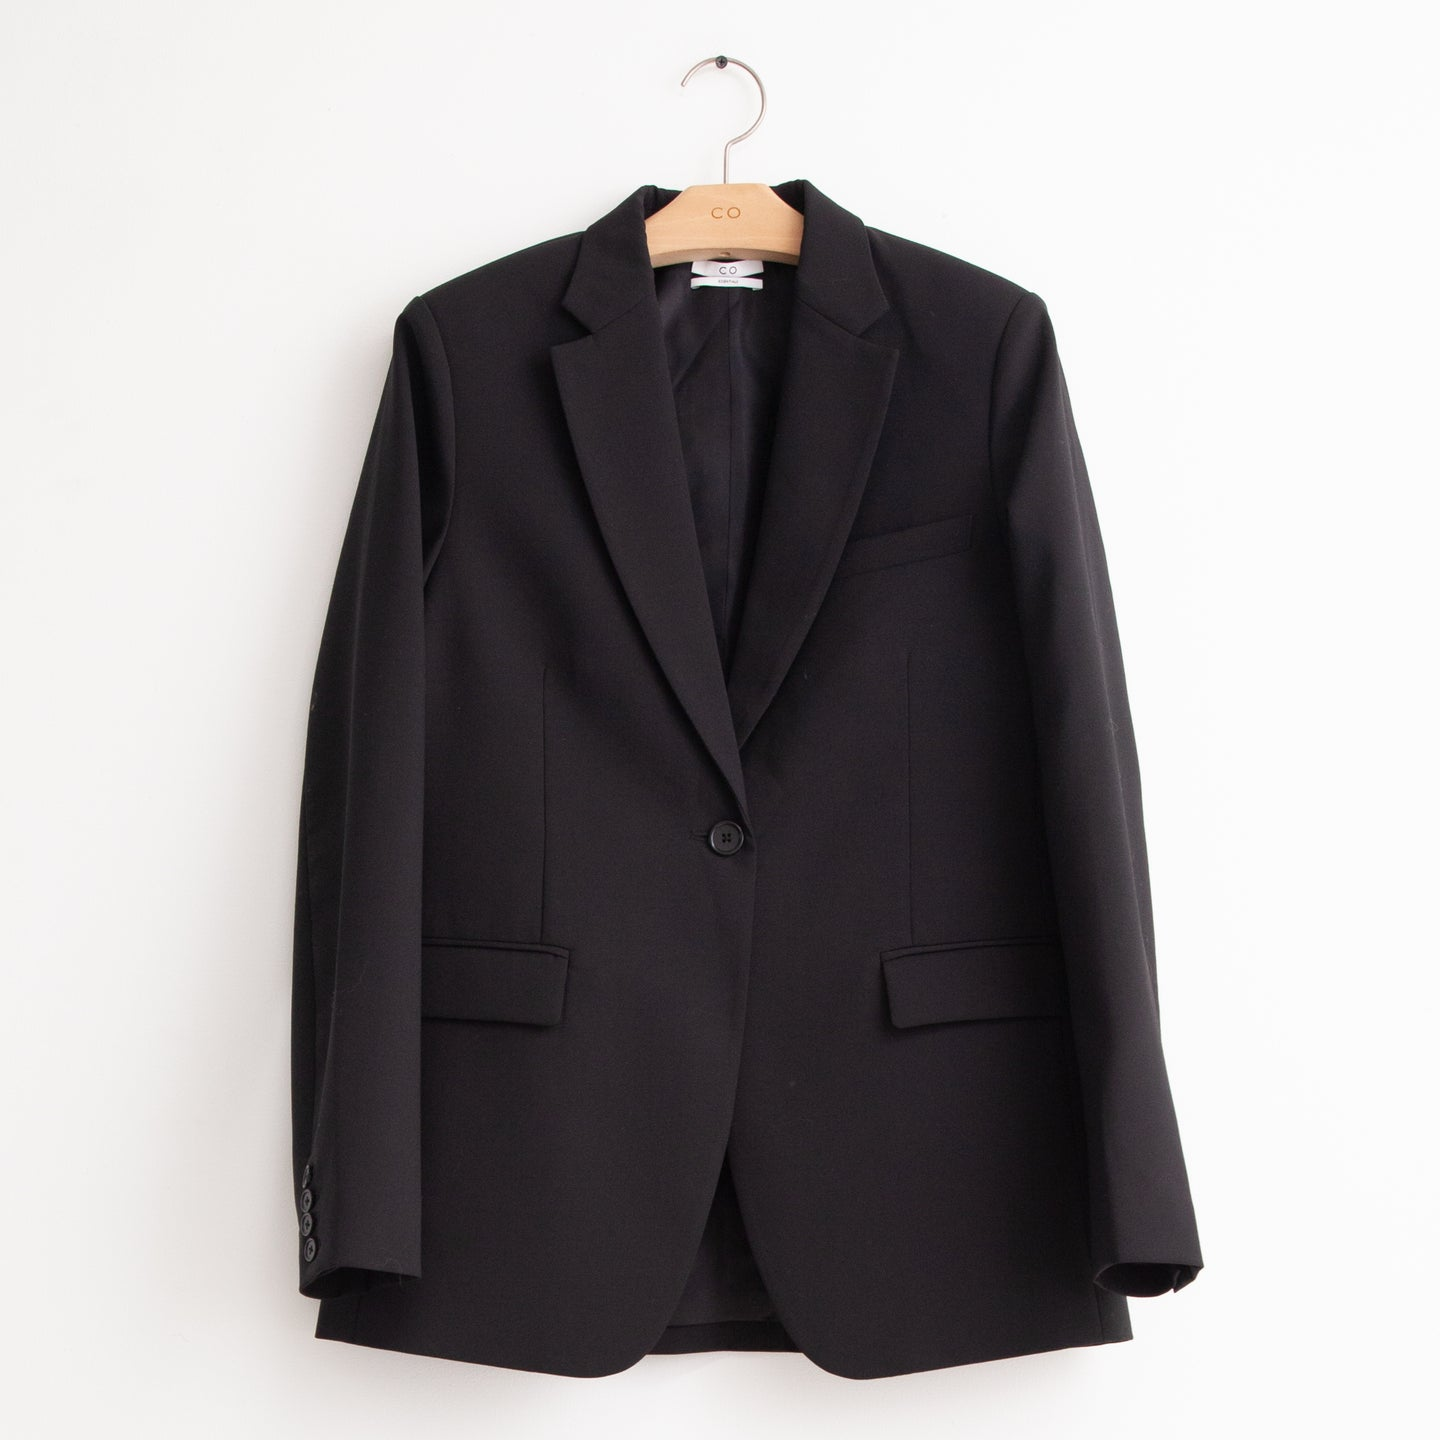 Long sleeve flap pocket blazer in black lightweight fluid wool - CO